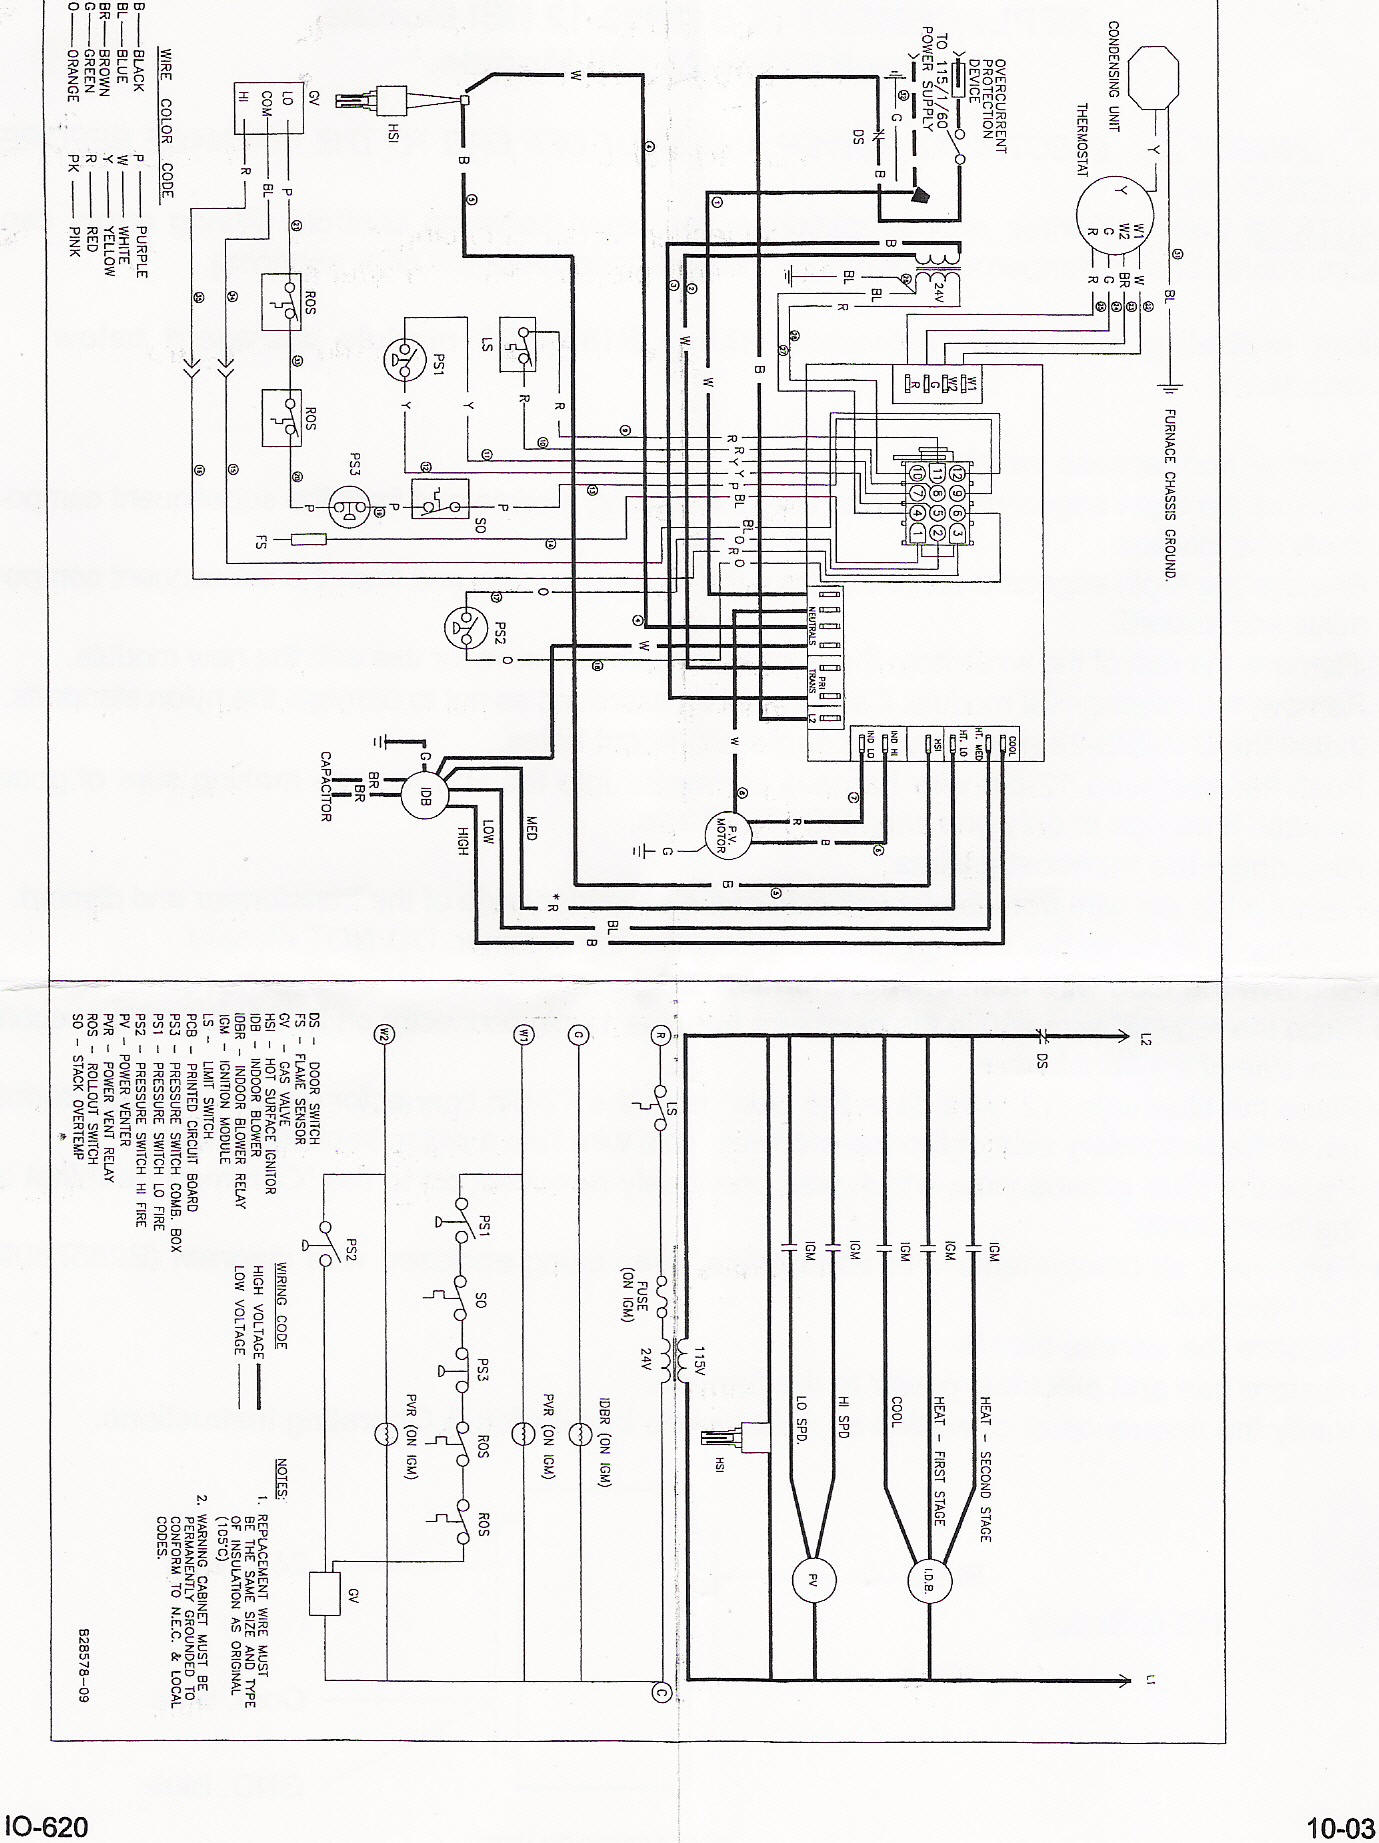 goodma2 instr goodman control board b18099 23 instructions Copeland Capacitor Wiring Diagram at nearapp.co